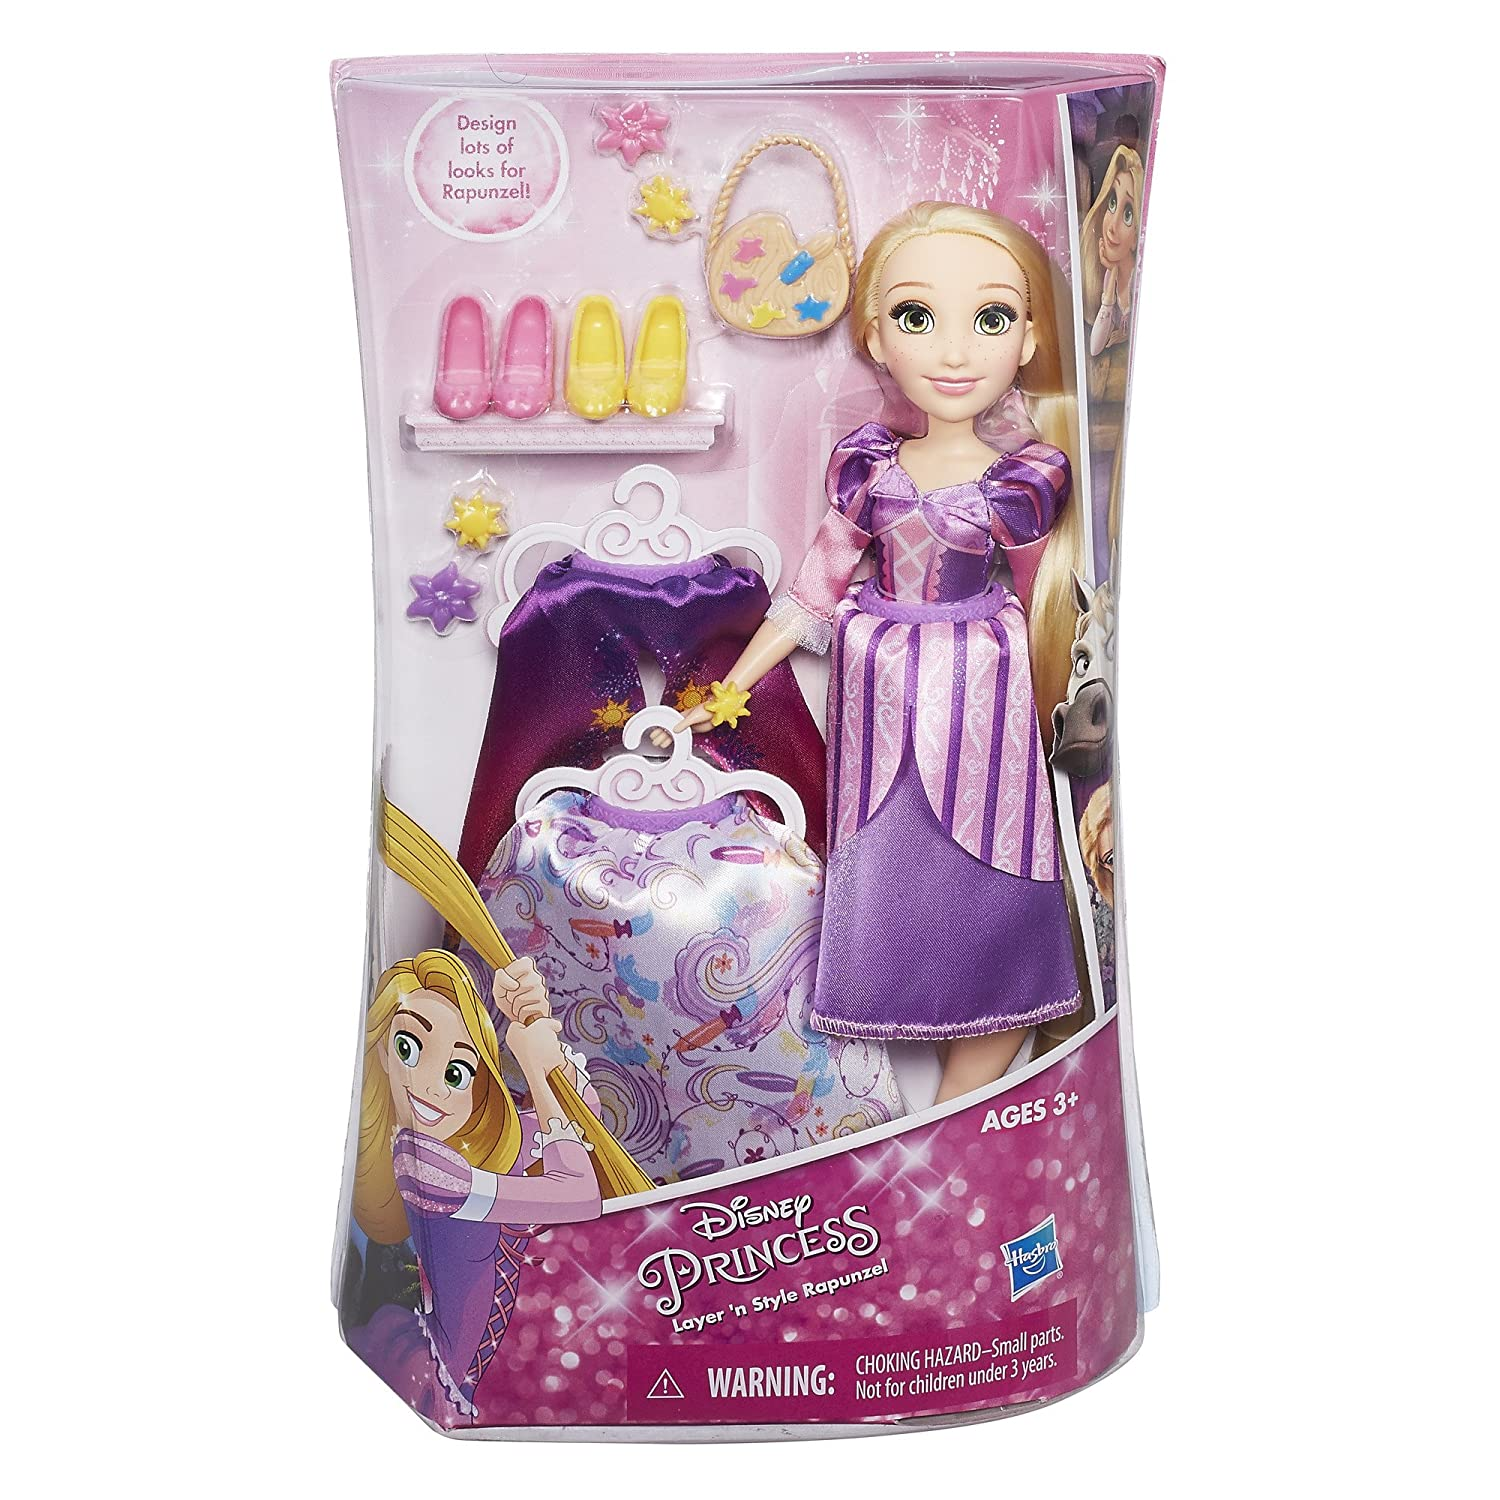 Disney Princess Layer /'n Style Rapunzel Doll with Fashion Accessories